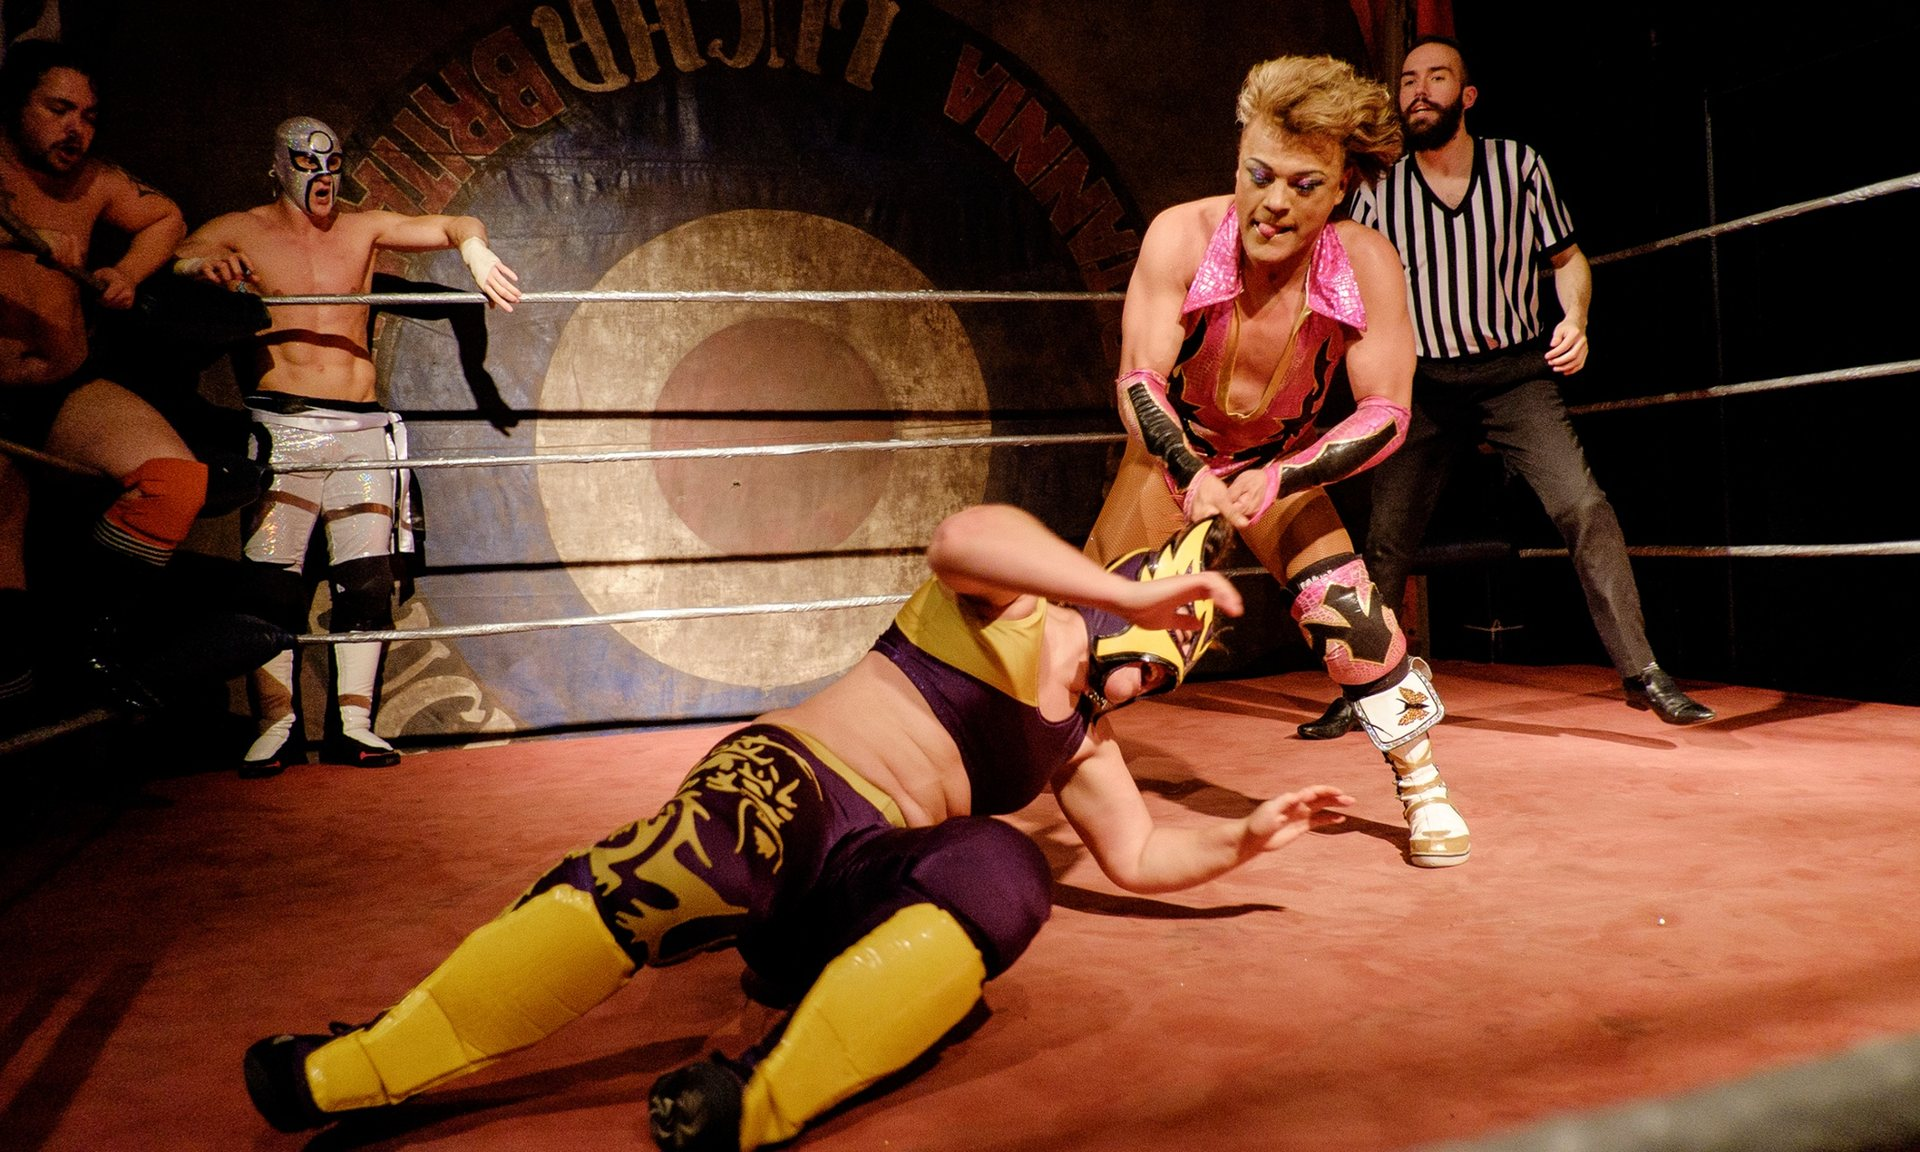 You Should Stream: This Short Doc on the Gay Luchador Fighting Machismo While Looking Fierce